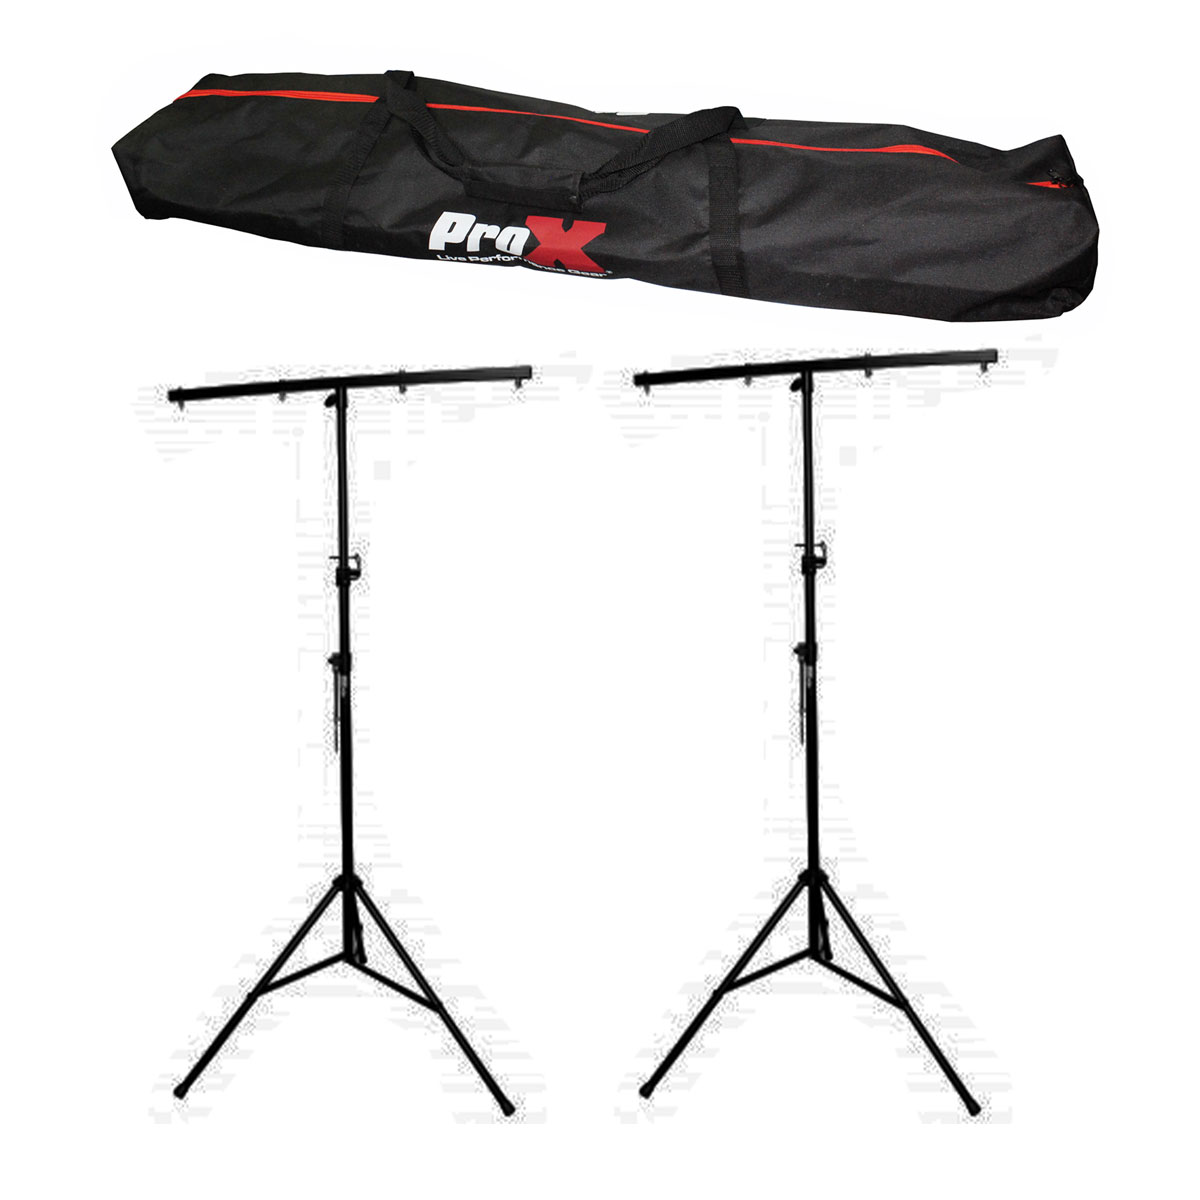 Dj lighting stand package w 2 stands square t bars carry case 9ft pro x aloadofball Choice Image